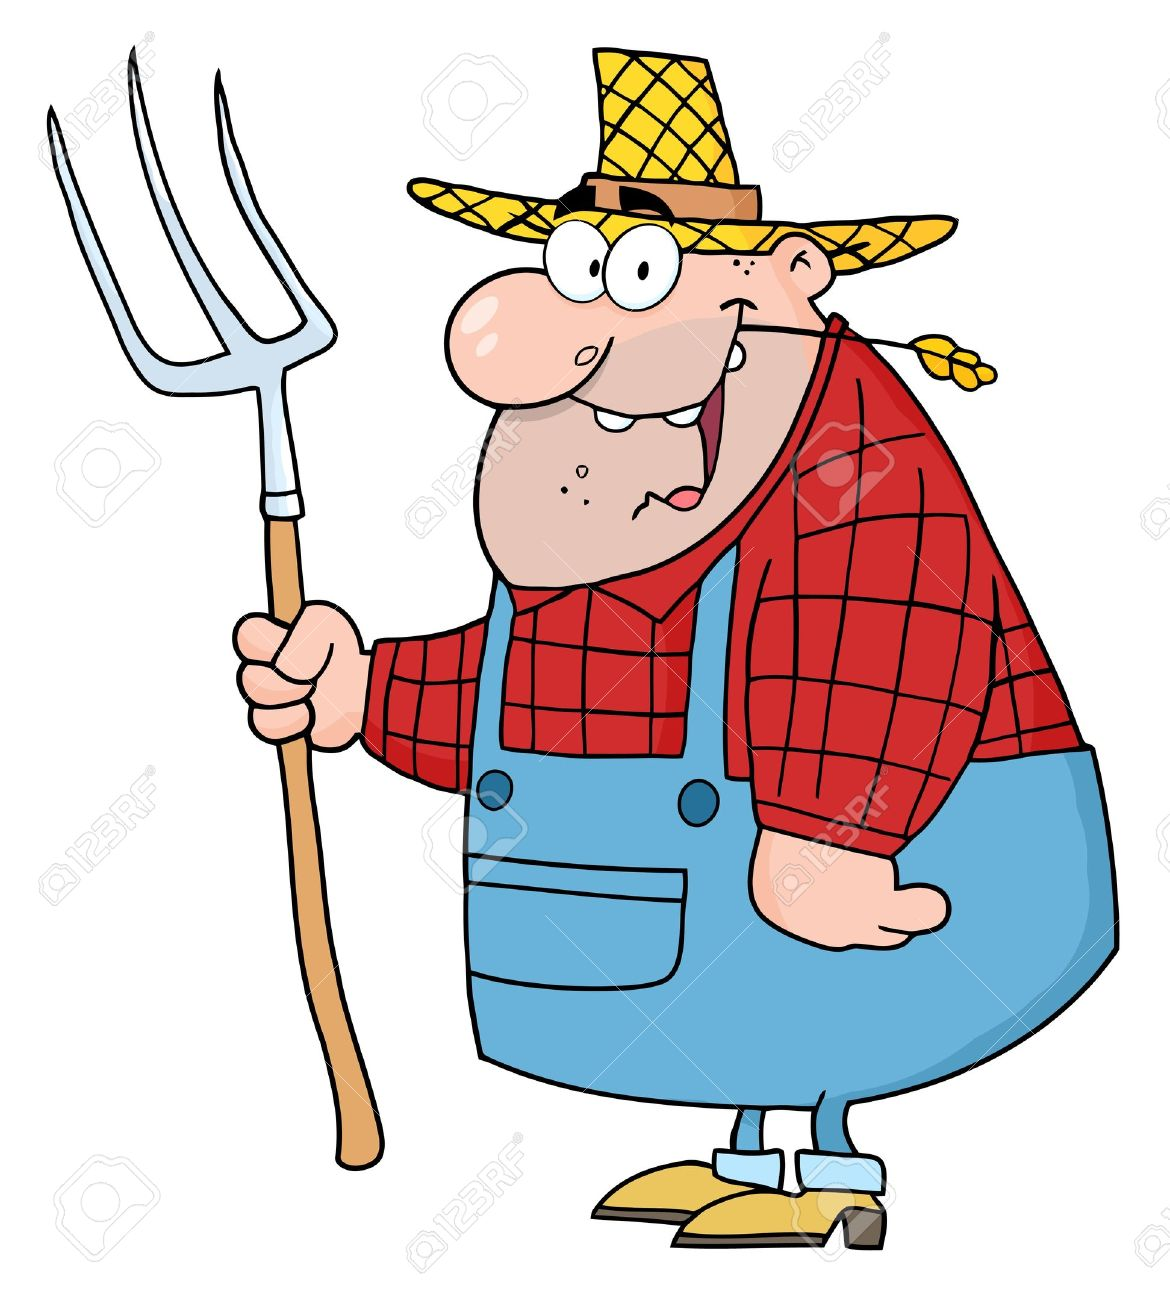 Lucky person clipart svg freeuse download Lucky Farmer Man Carrying A Rake Royalty Free Cliparts, Vectors ... svg freeuse download